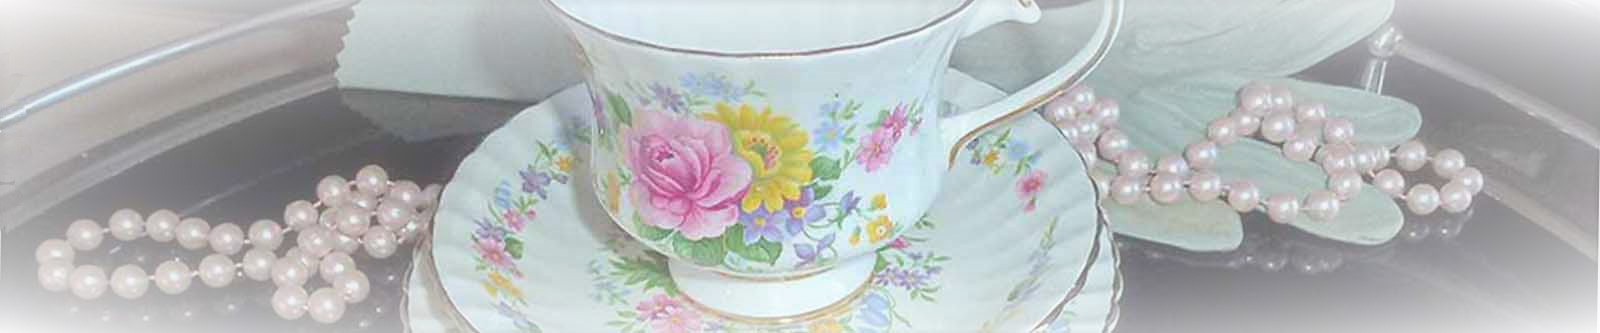 Hire Vintage china from High-Tea-Hire-Napier-New-Zealand